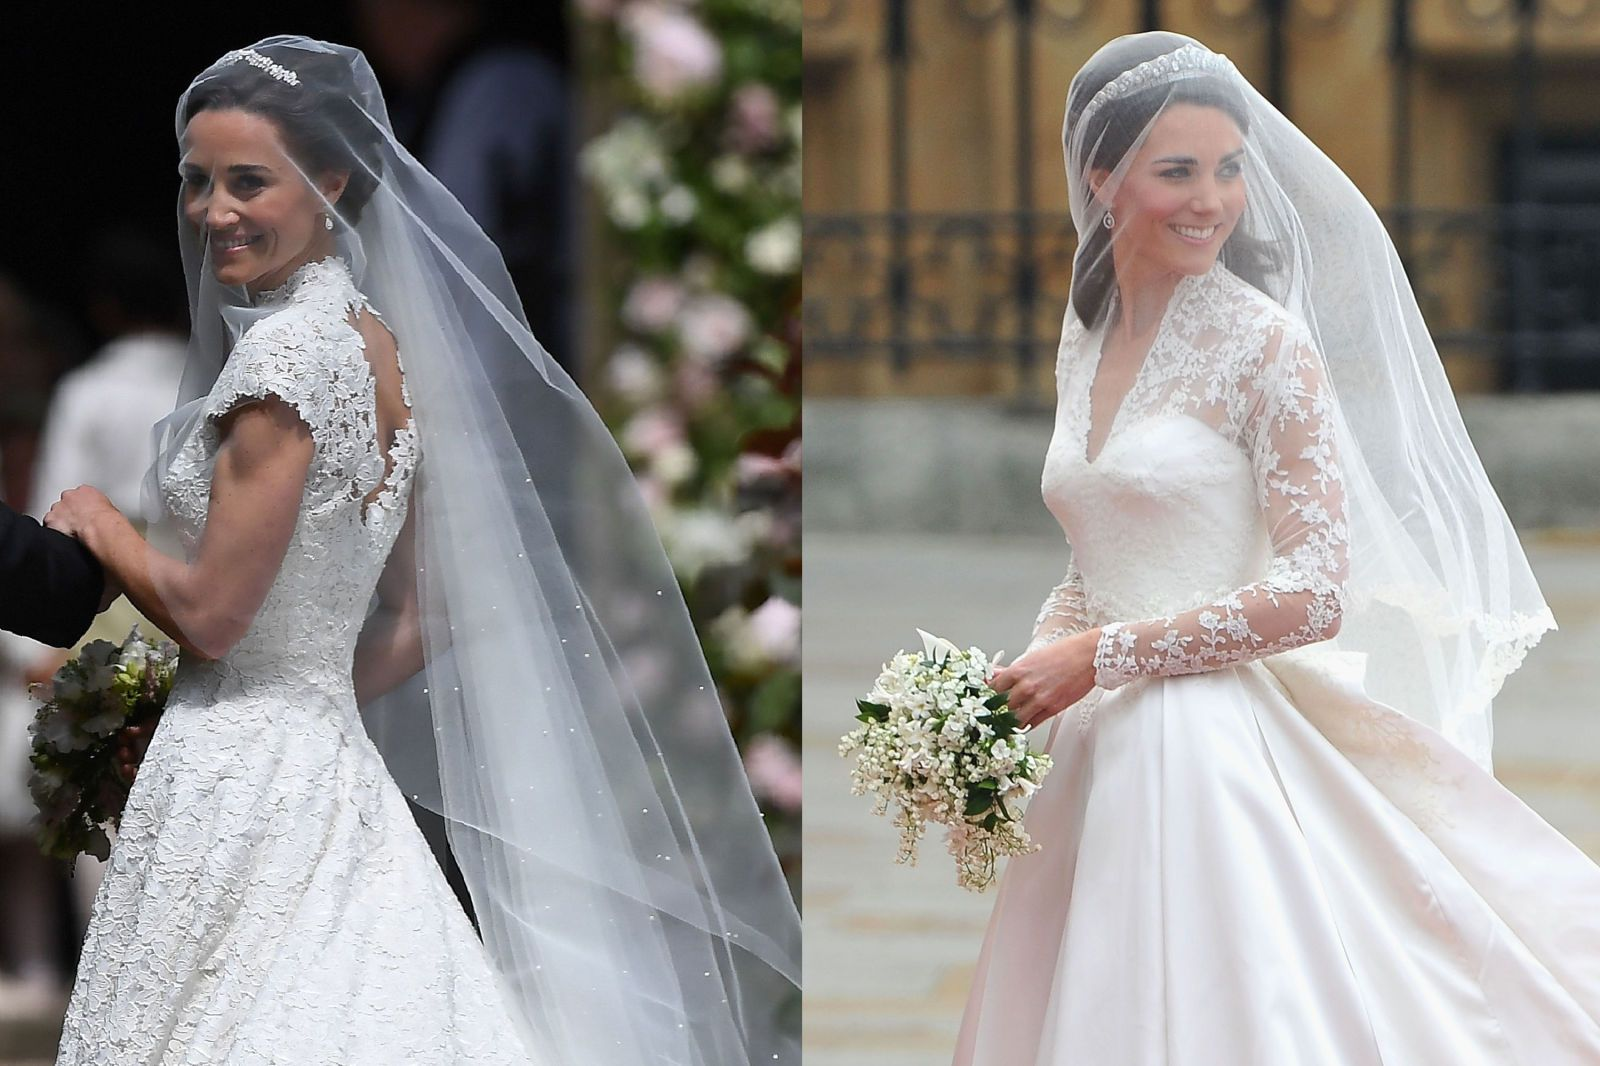 Pippa Middleton Weds in Giles Deacon